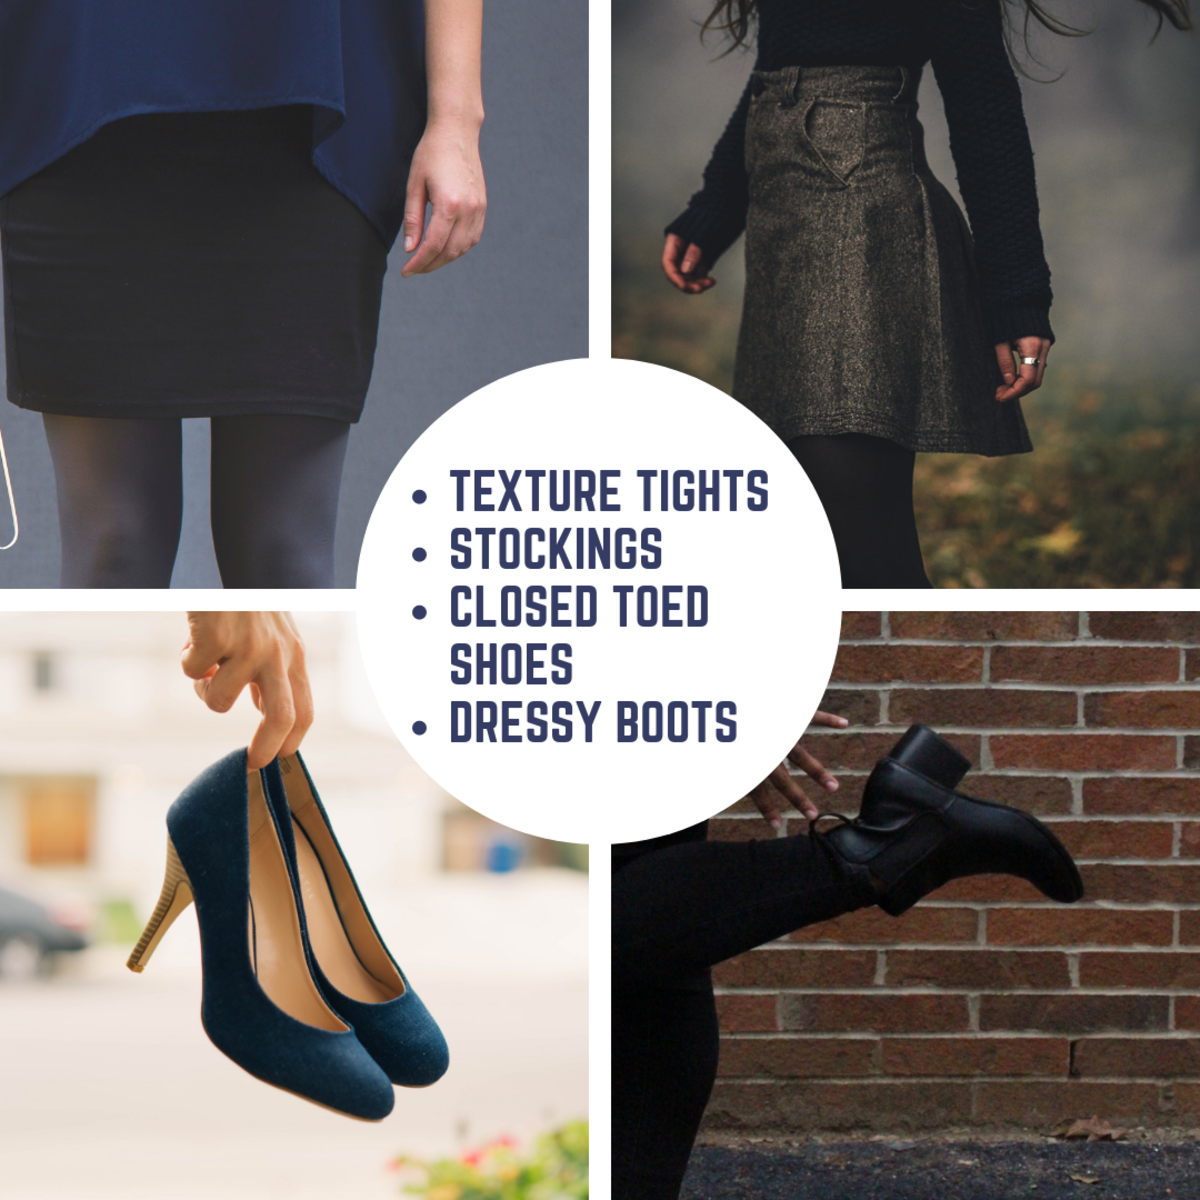 Closed toed shoes are most appropriate, but you must also consider what type of weather you will be in.